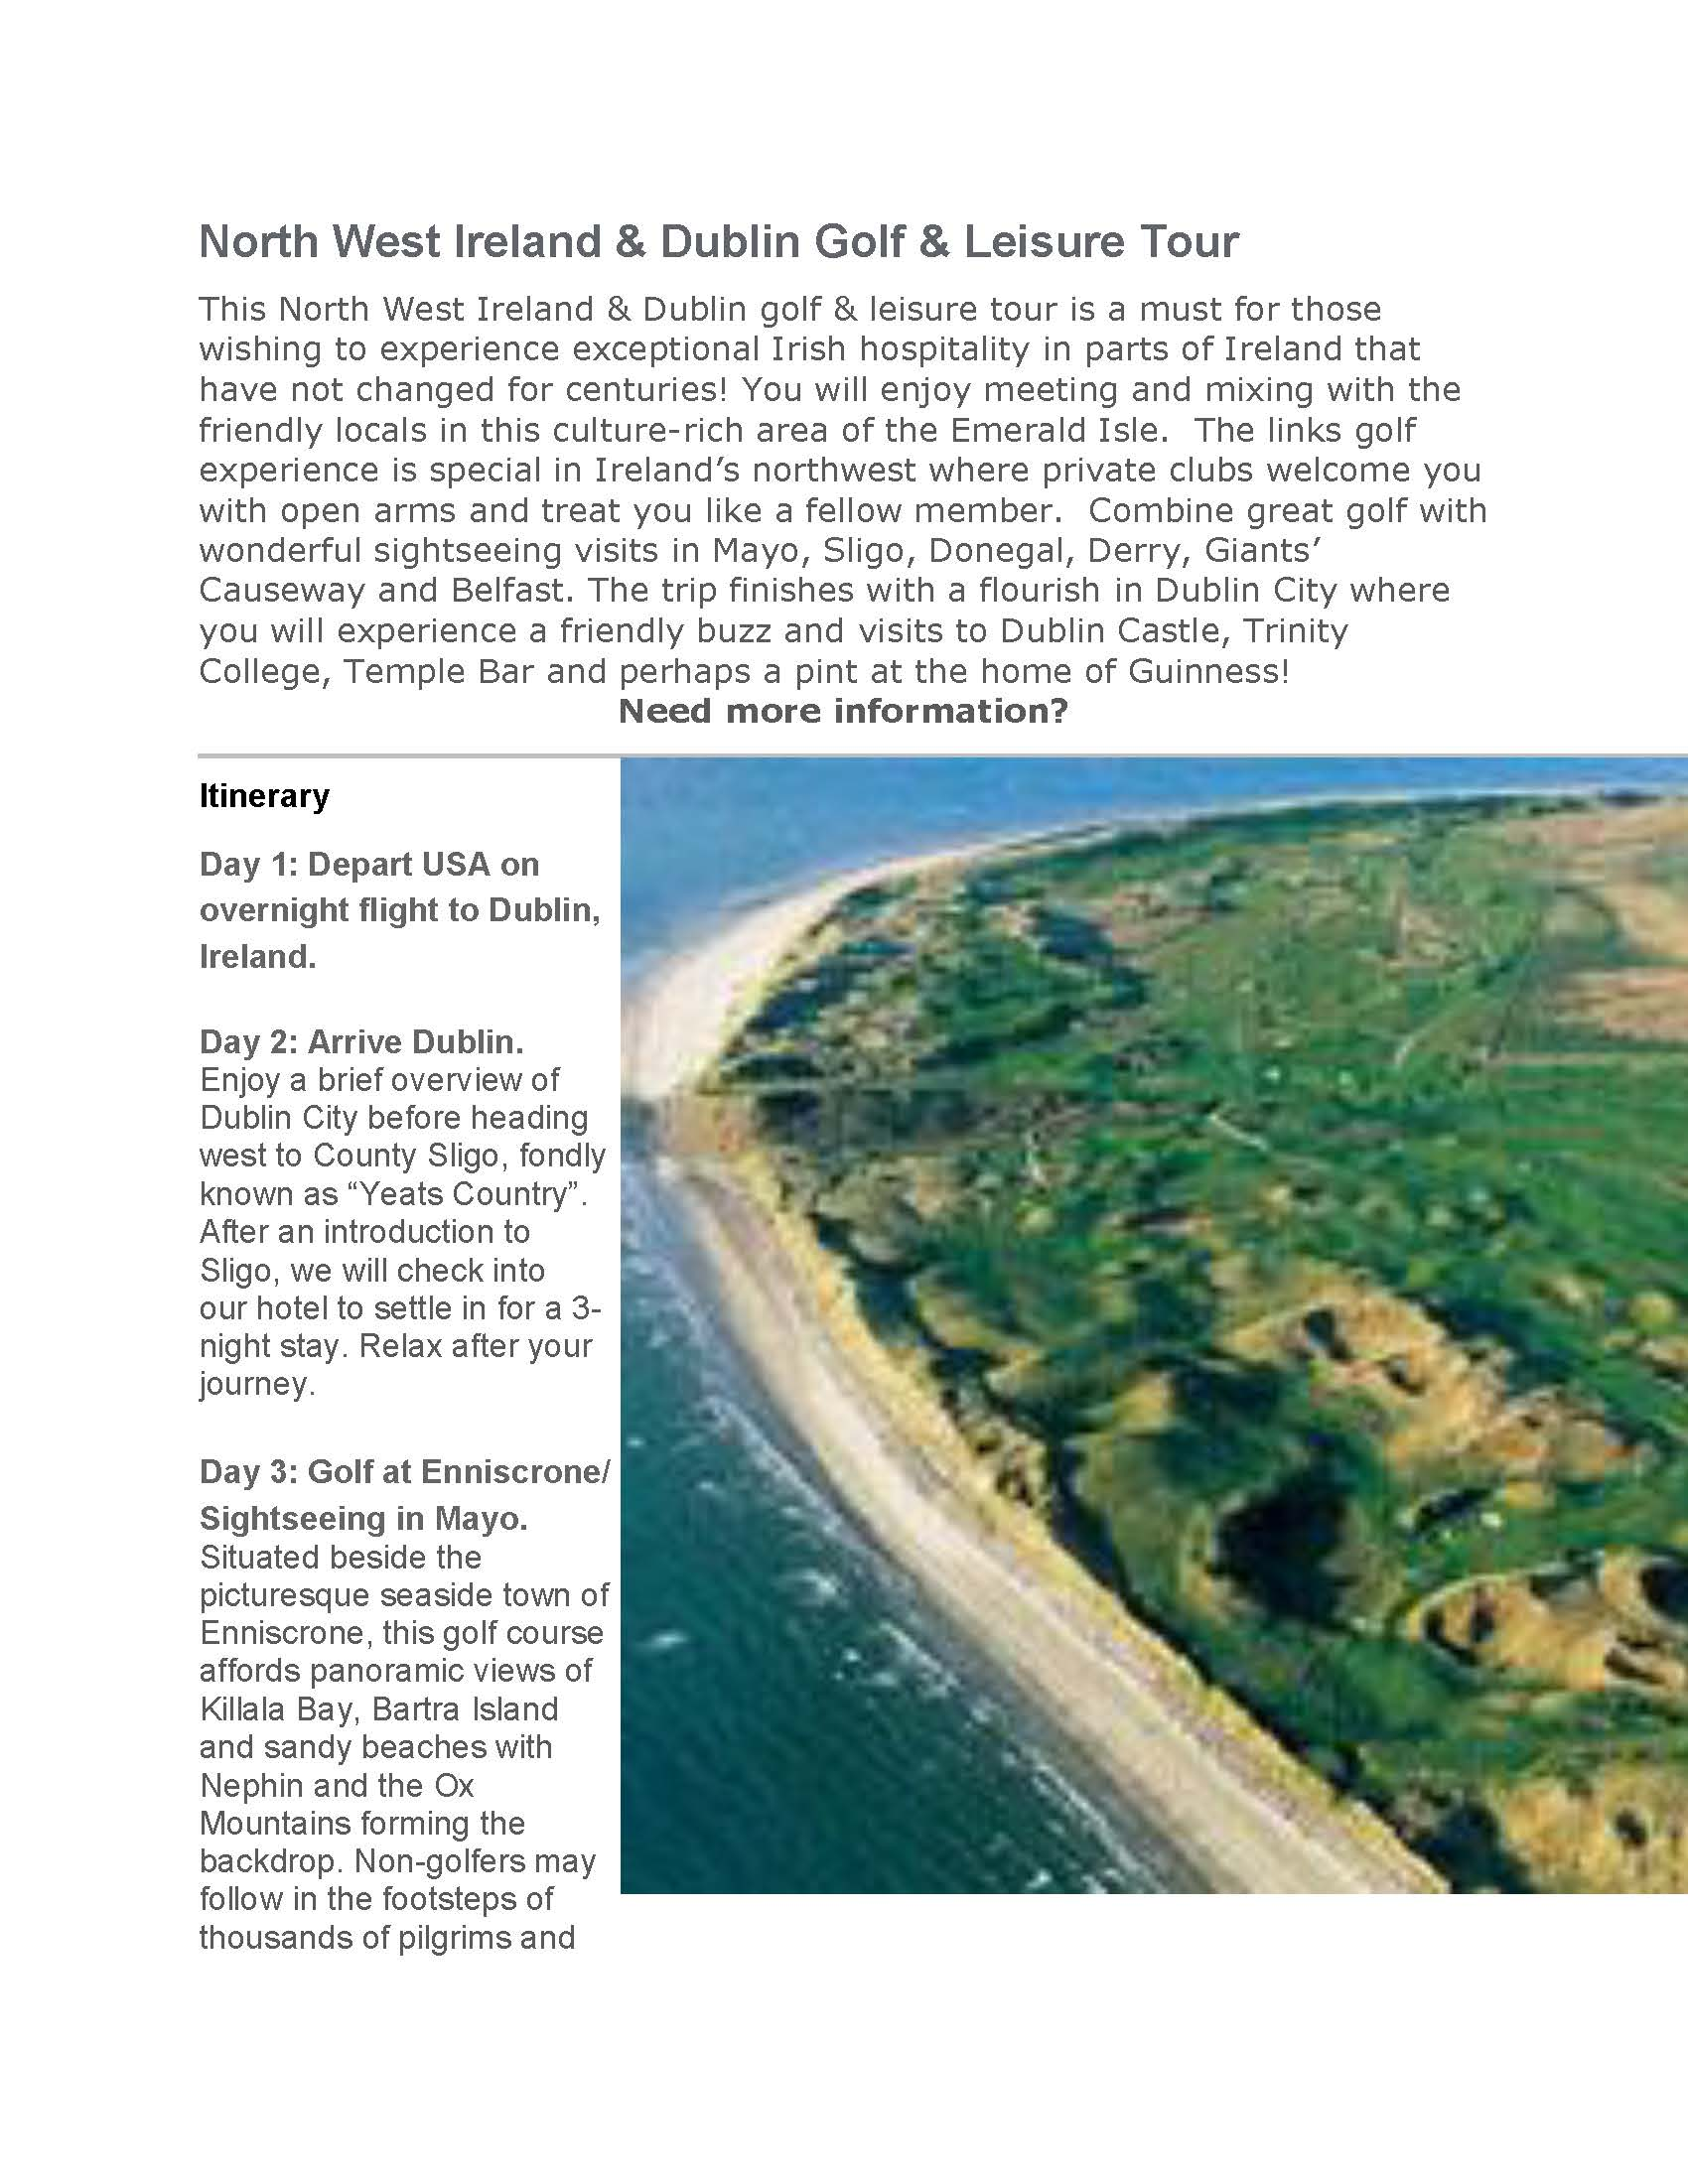 North West Ireland & Dublin Golf & Leisure Tour Edited_Page_1.jpg